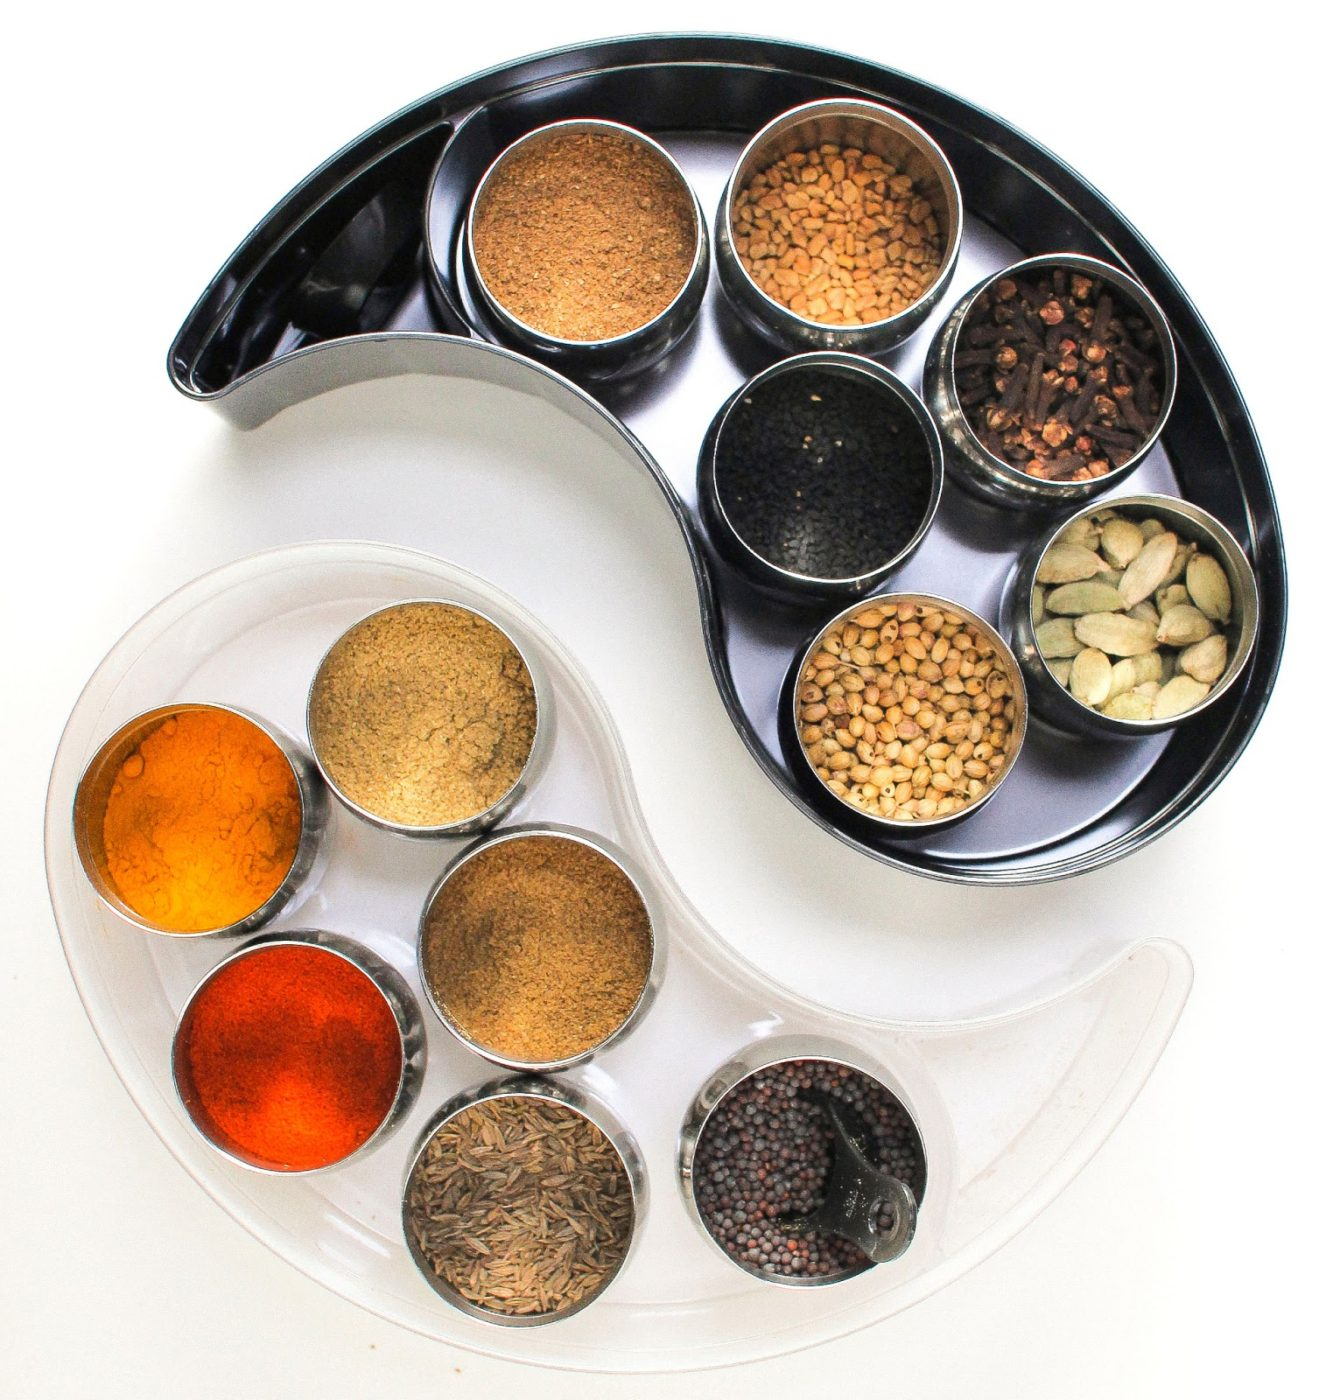 GitaDini Yin Yang Storage Bin Set with stainles steel containers and spices